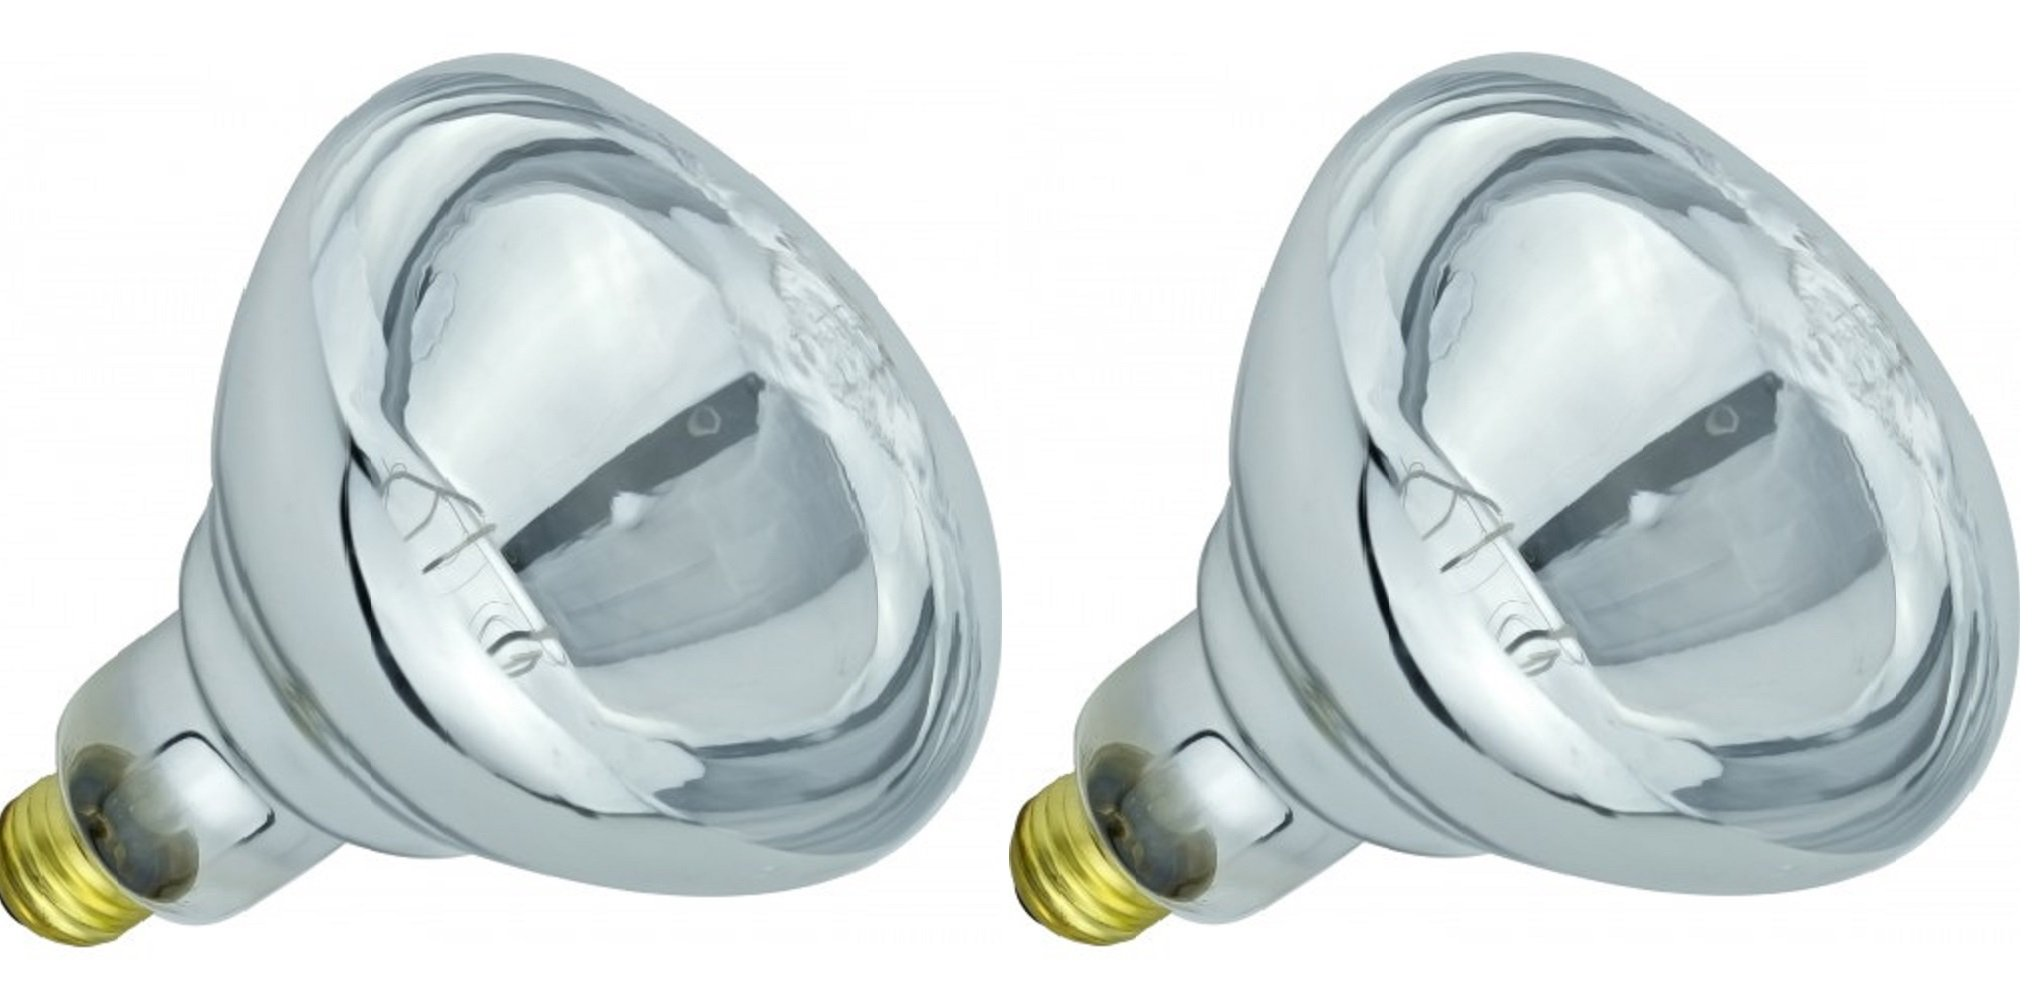 Pack Of 2 BR40/250/E26 Heat Lamp 250-Watt BR40 Clear Flood Reflector Mediume Base Light Bulb